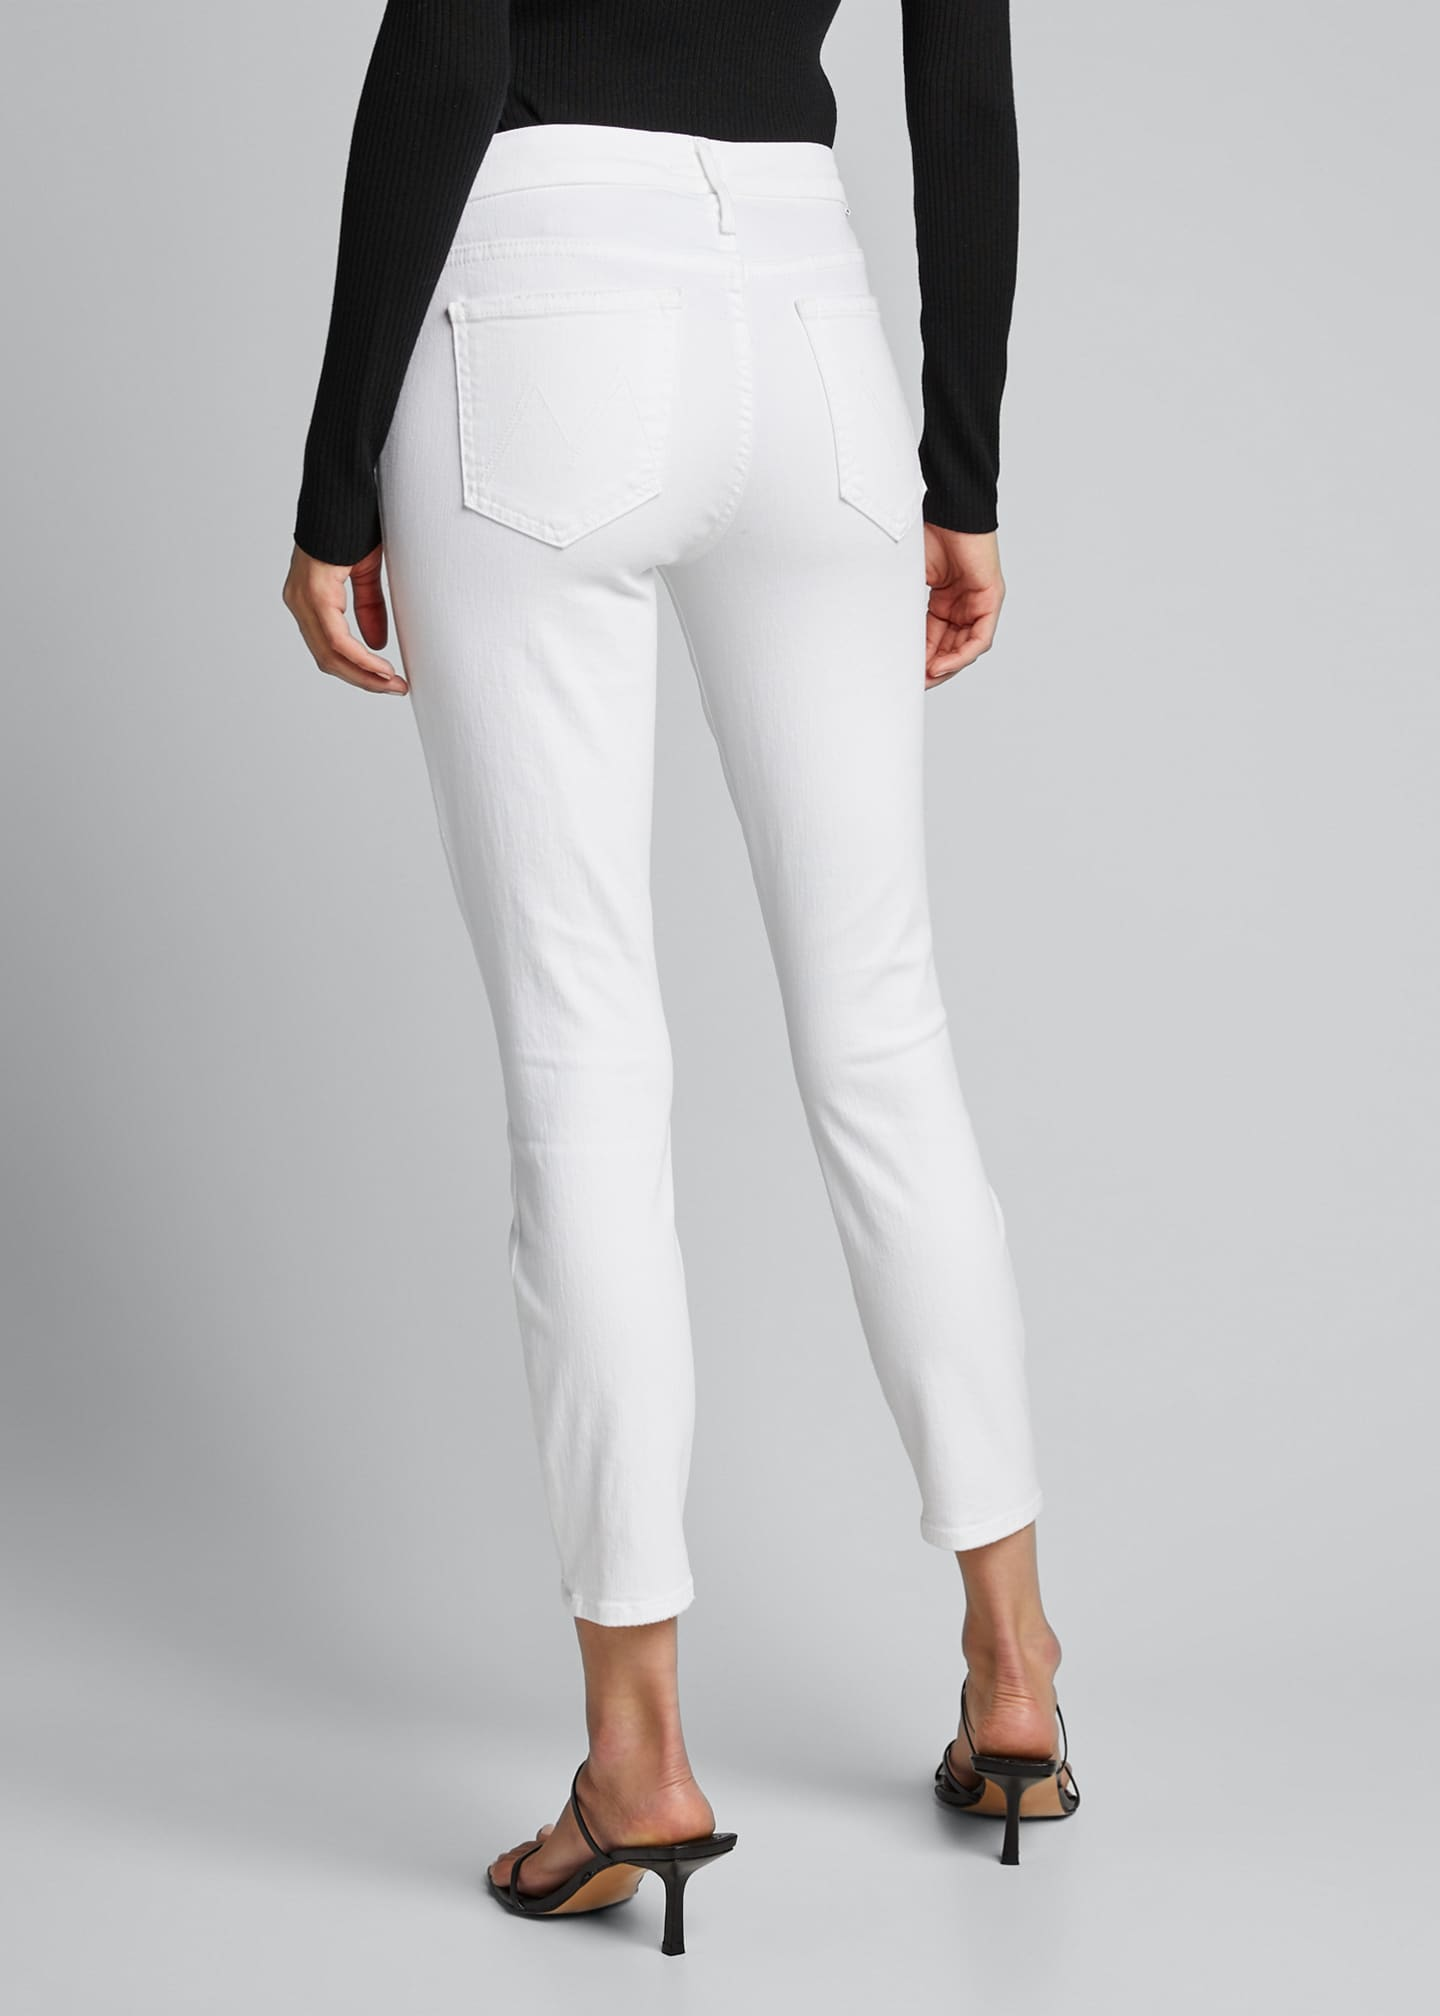 Image 2 of 5: The Looker Crop Jeans